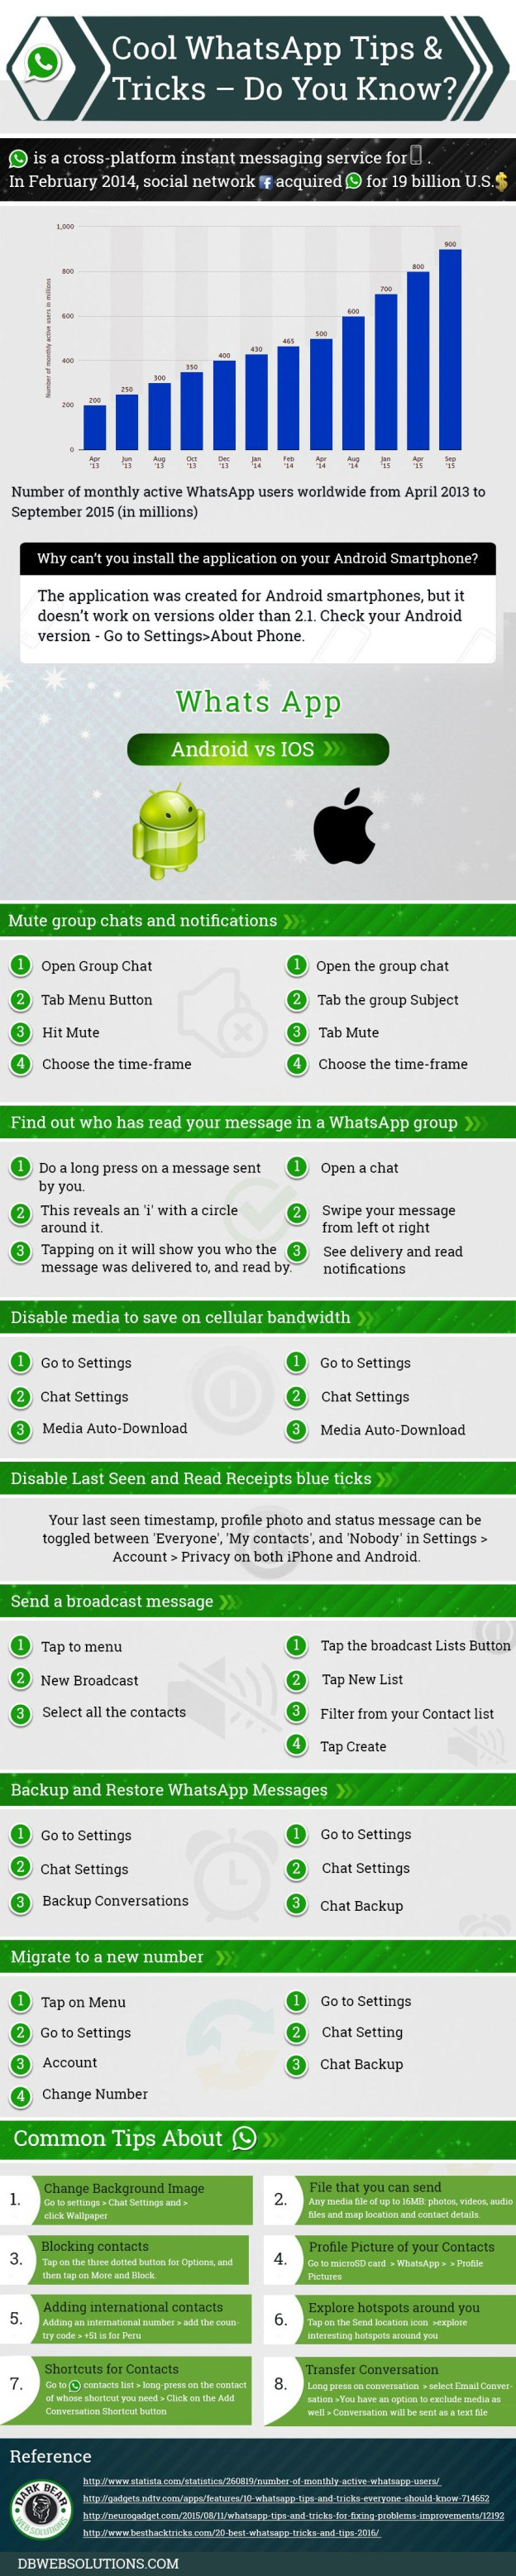 "WhatsApp: 15 ""hidden"" functions in the messaging app 5"